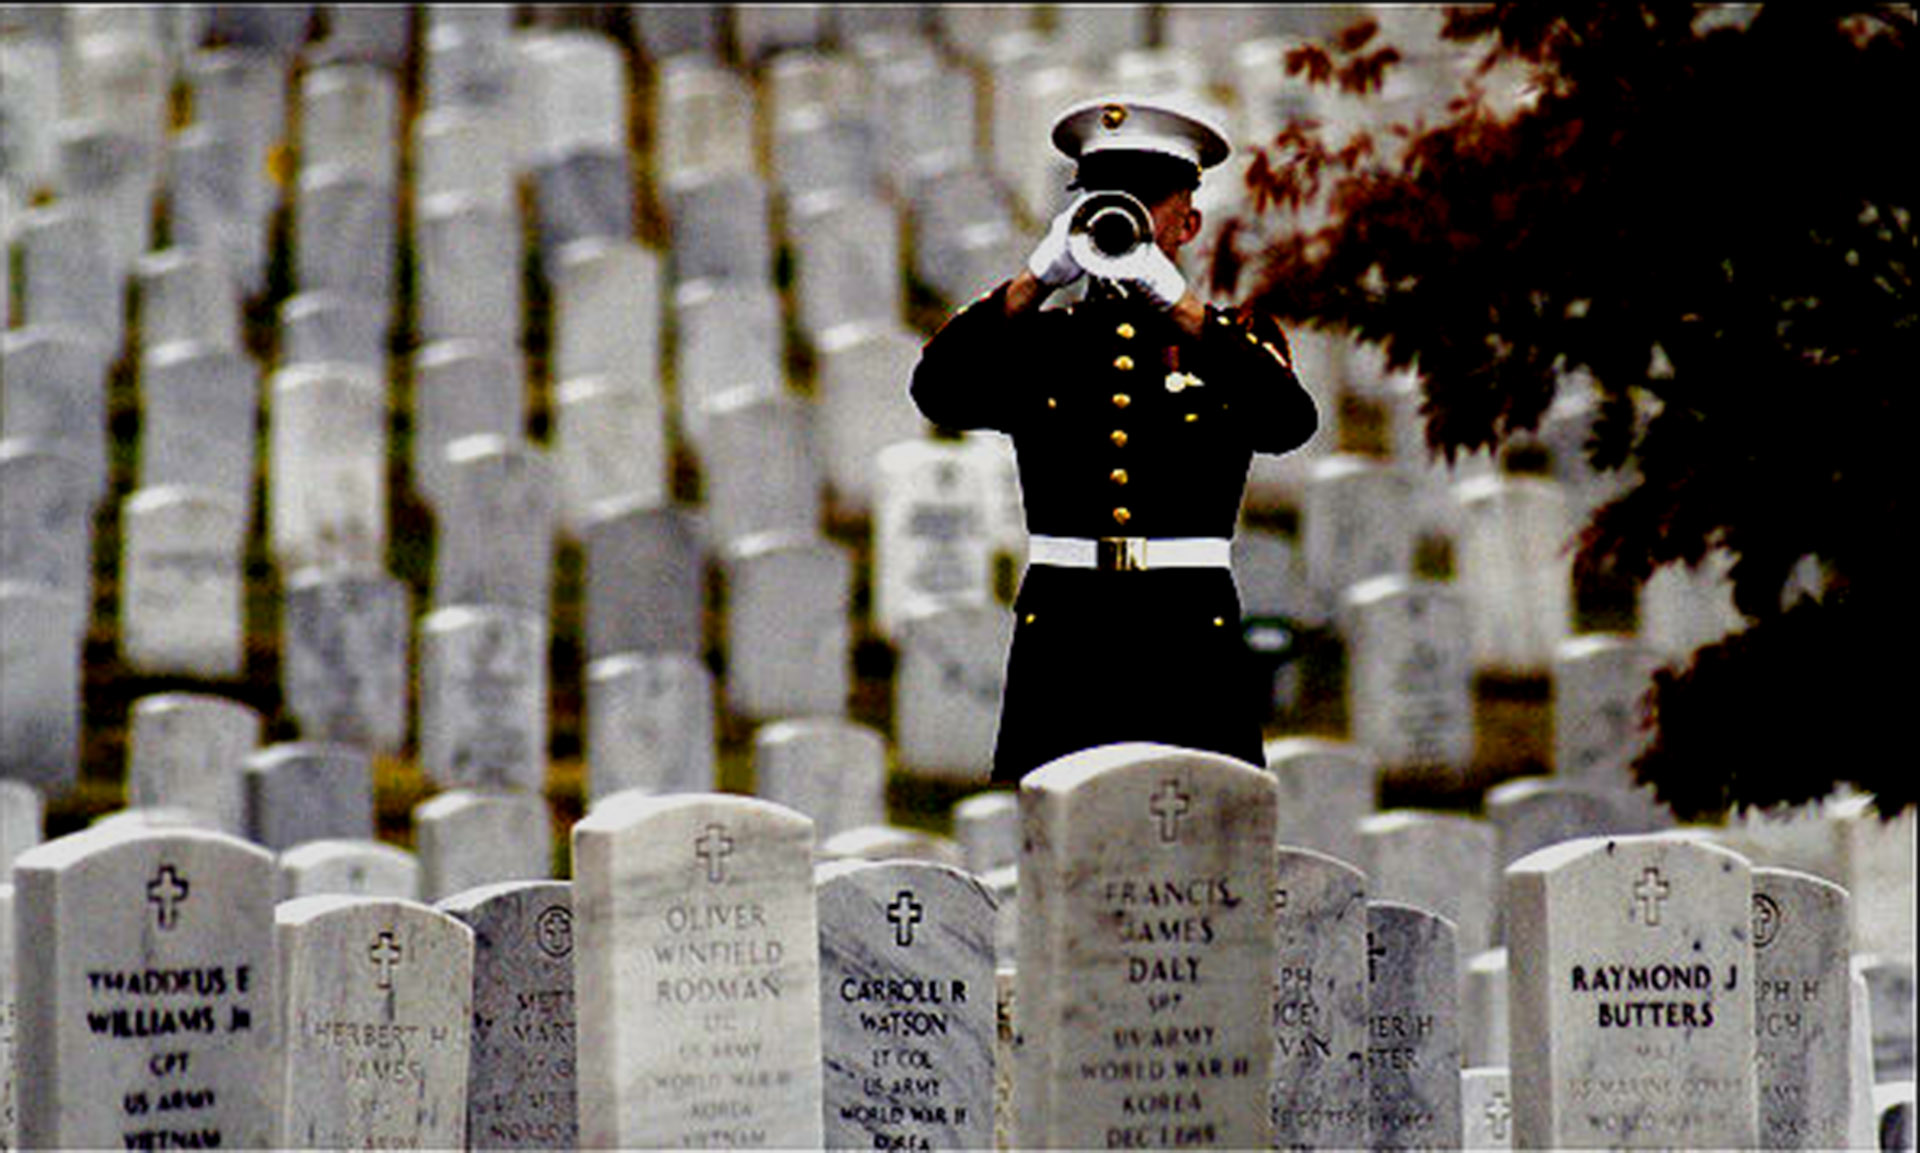 Date:  Oct. 7, 2005 Slug:  me-burial assignment #  173242 Location: Arlington National Cemetery  Photographer: Gerald Martineau Summary:  Vietnam War Multiple Burial Cereemony caption:  A bugler plays taps at memorial services for 12 members of the Armed Forces, one Green Beret and 11 Marines, who died in Vietnam in May 1968.  StaffPhoto imported to Merlin on  Fri Oct  7 13:51:06 2005